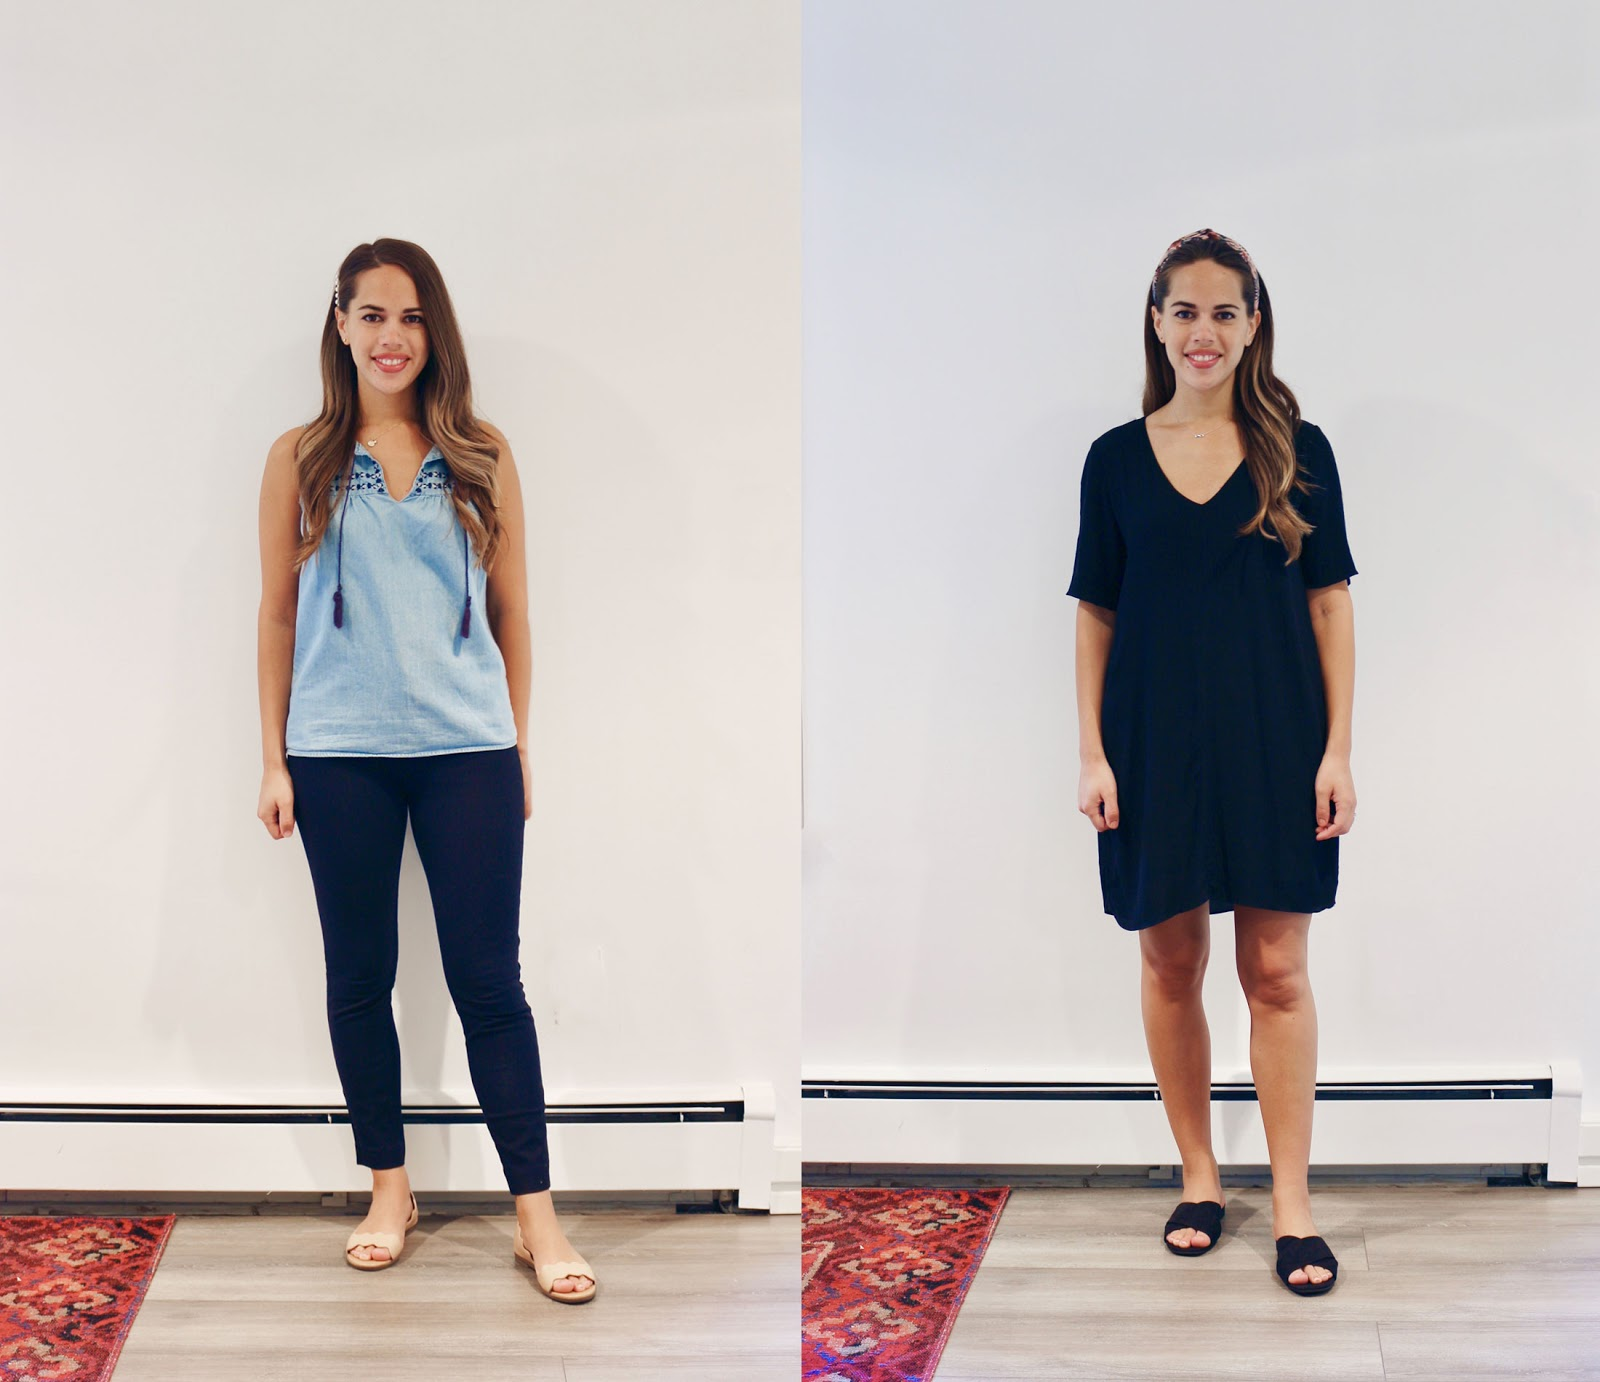 Jules in Flats -  August Outfits Week Two (Business Casual Summer Workwear on a Budget)